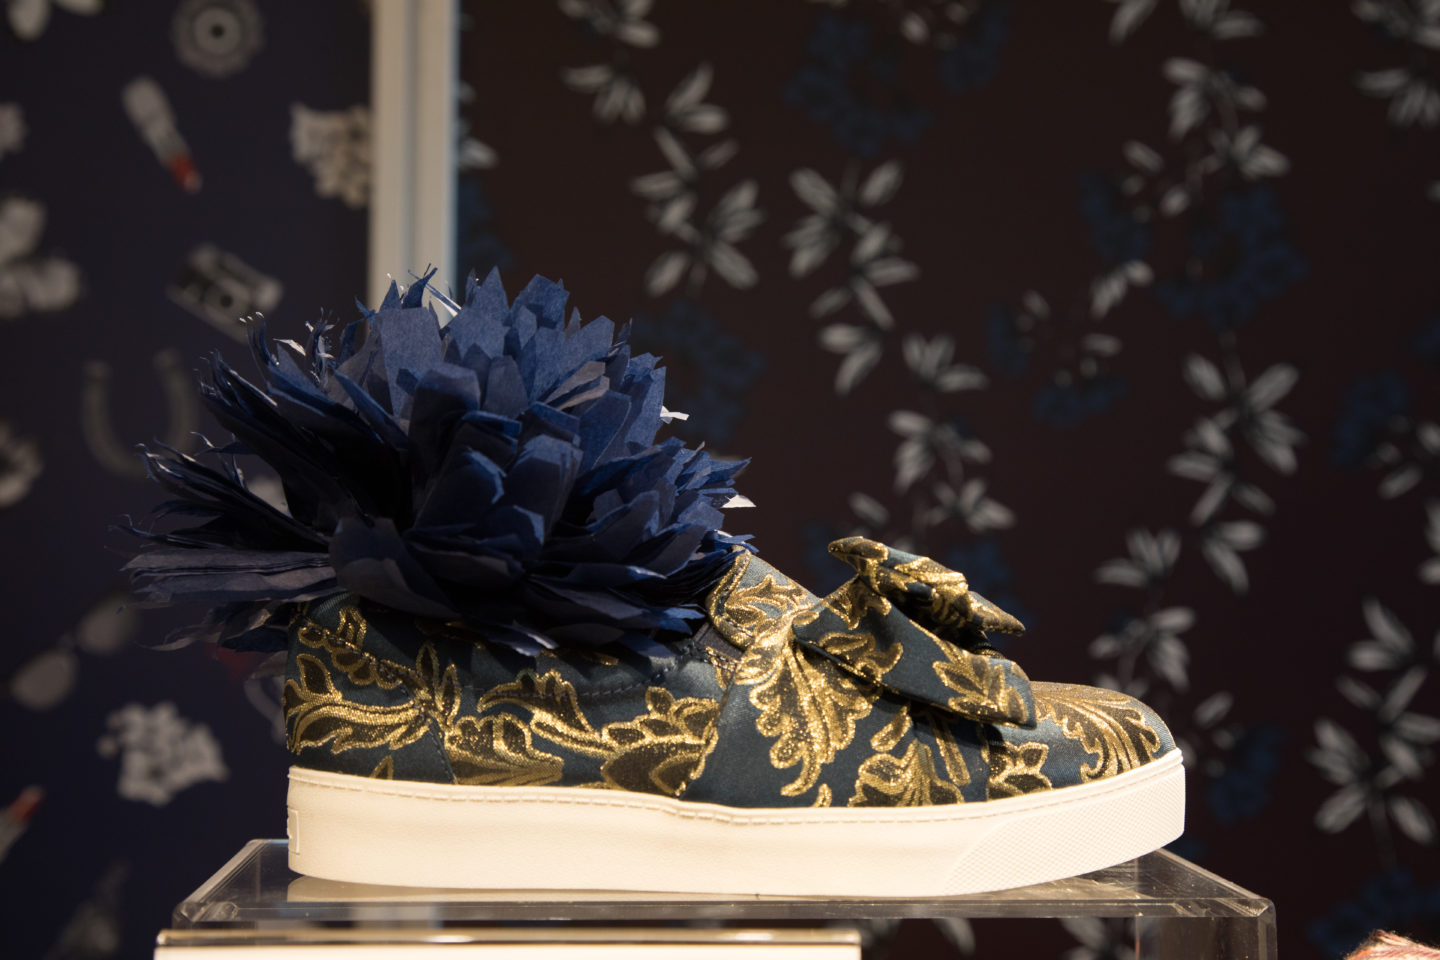 Embroidered-Libby Edelman-Shoes